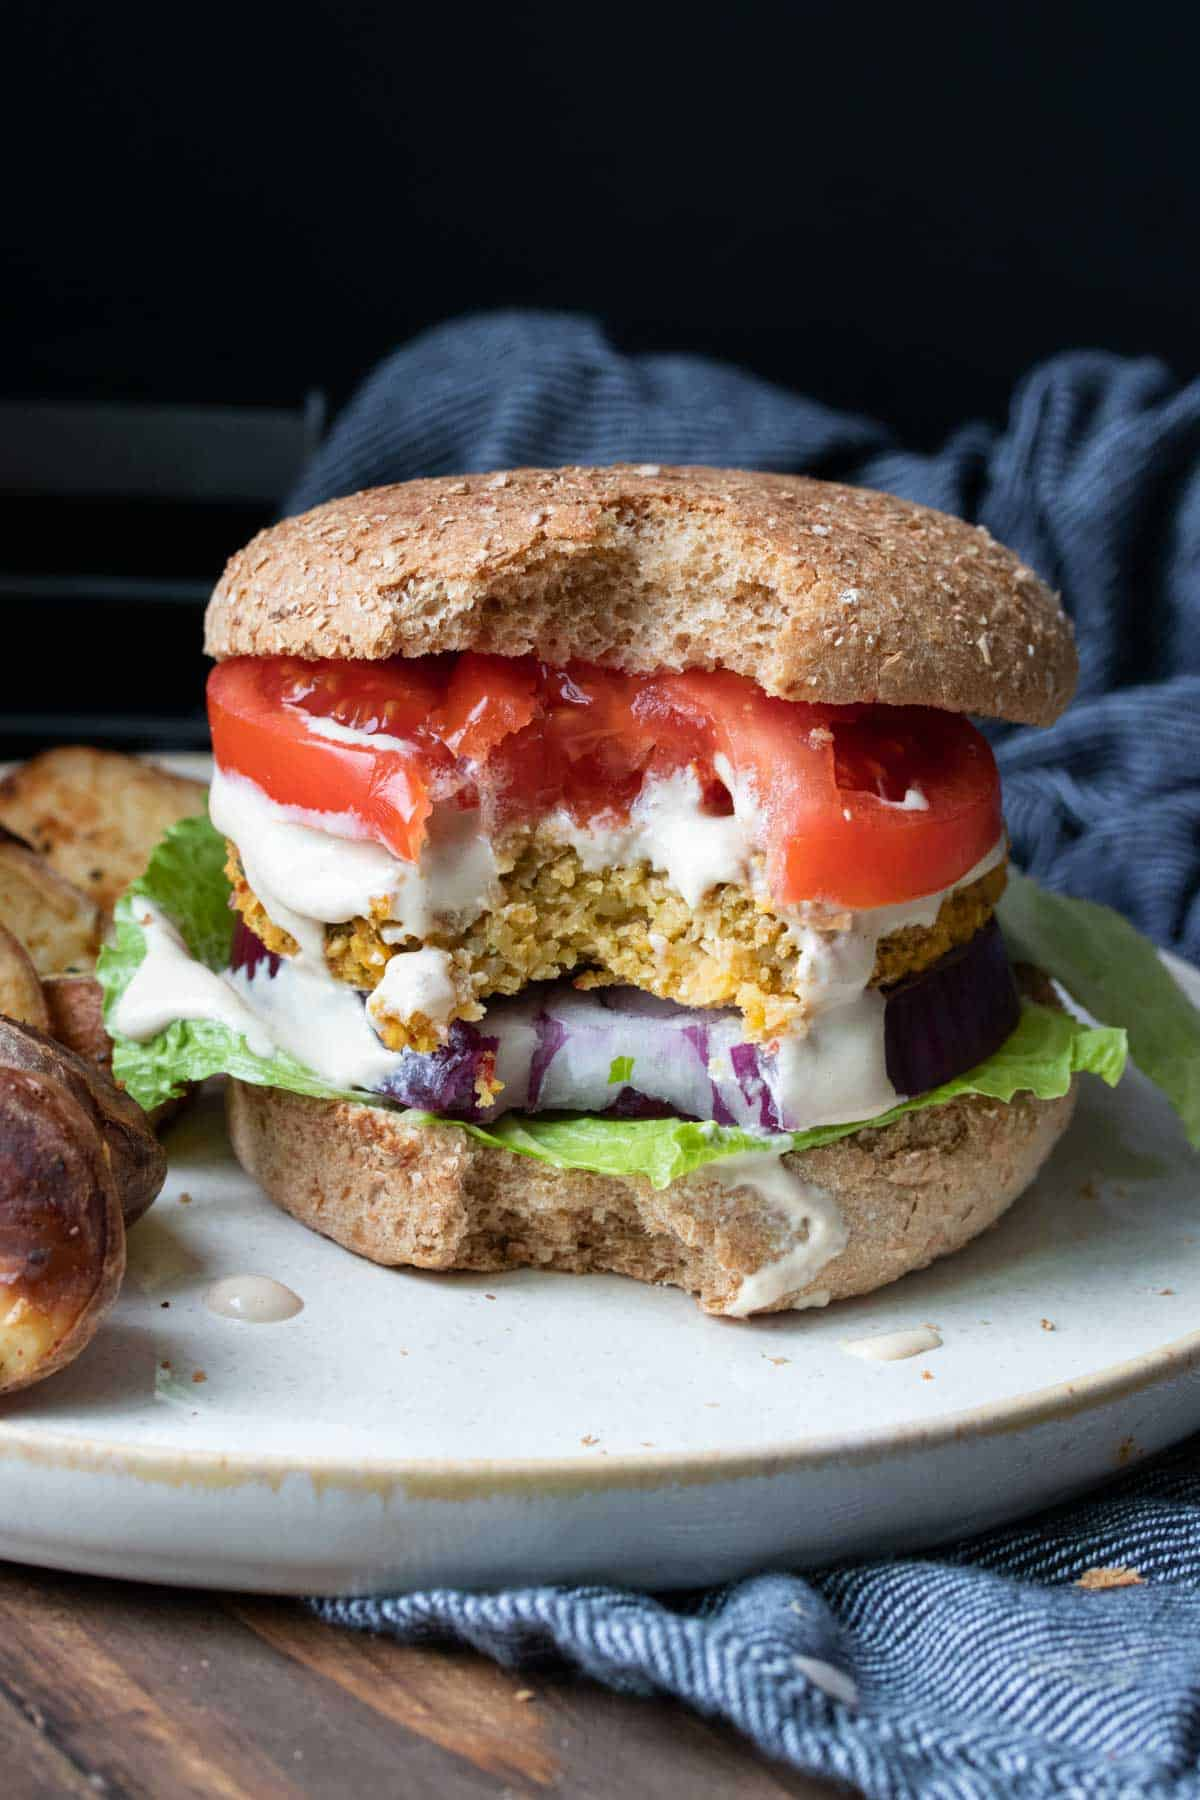 Falafel burger with lettuce, tomato and red onion and a bite out of the front